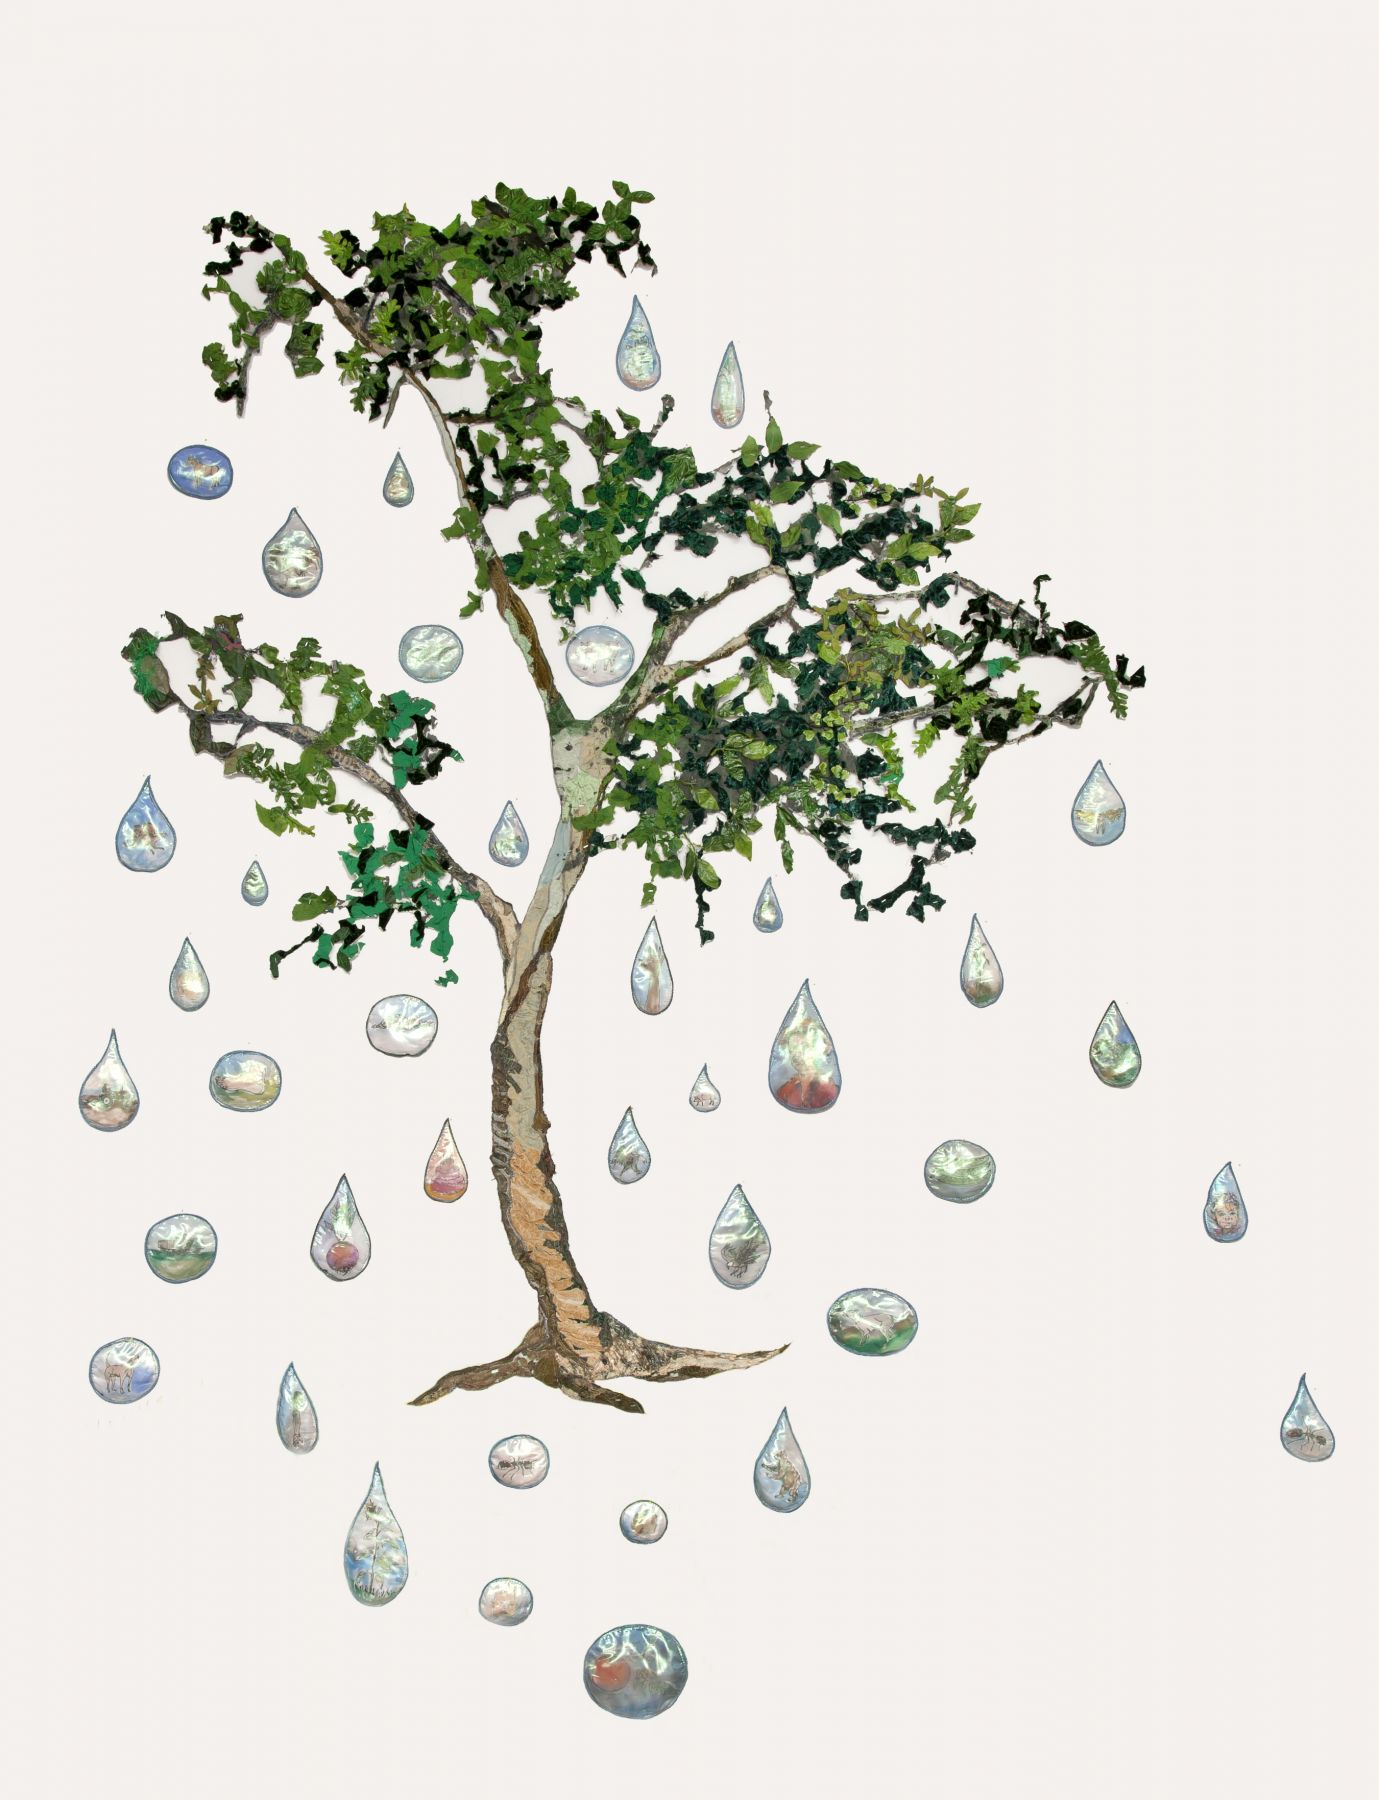 GINA PHILLIPS Memory Tree with memory drops, 2016